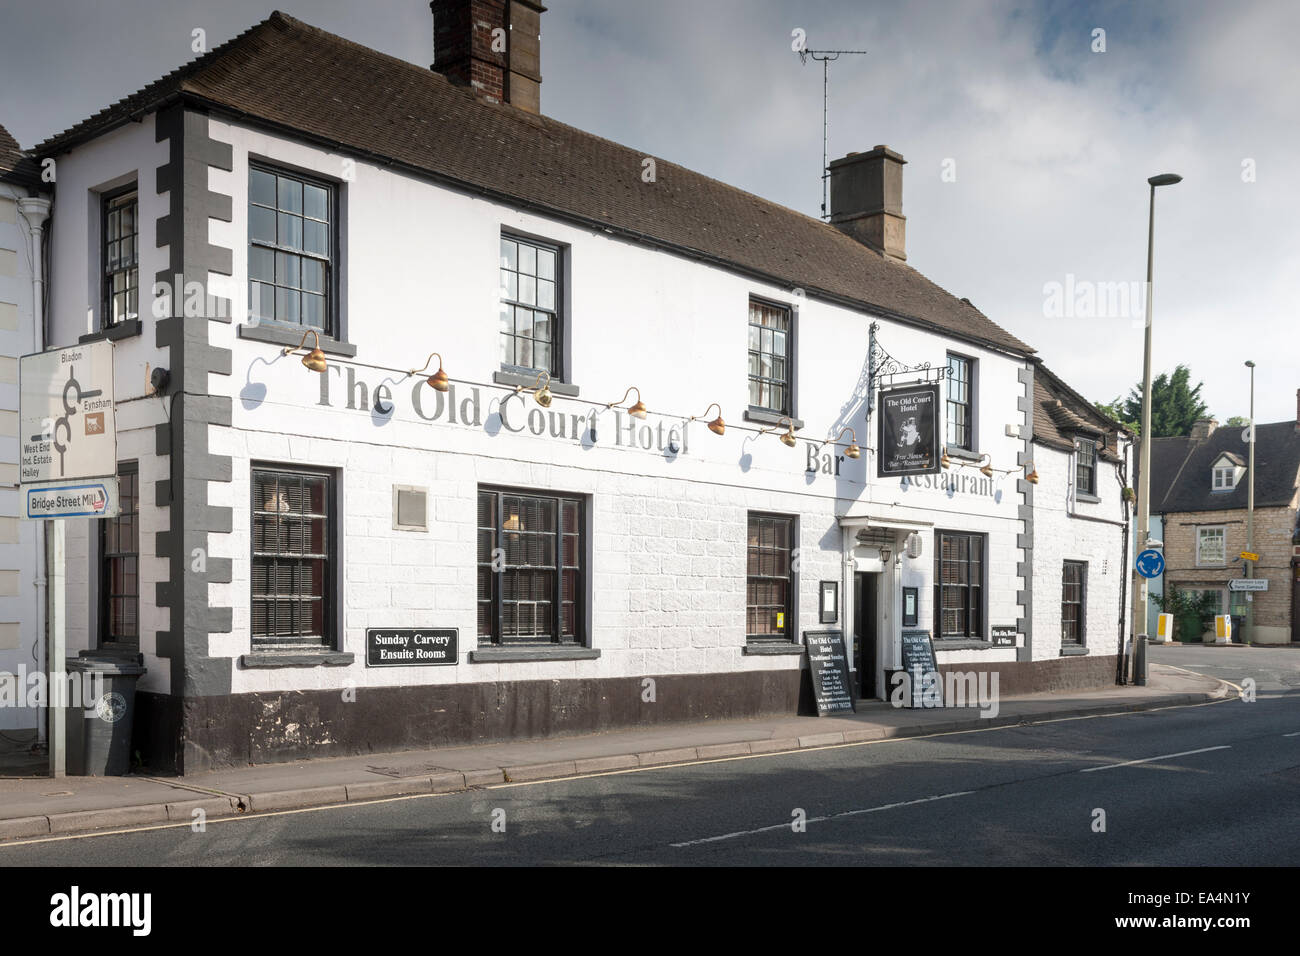 The Old Court Hotel coaching inn in Witney, Oxfordshire - Stock Image